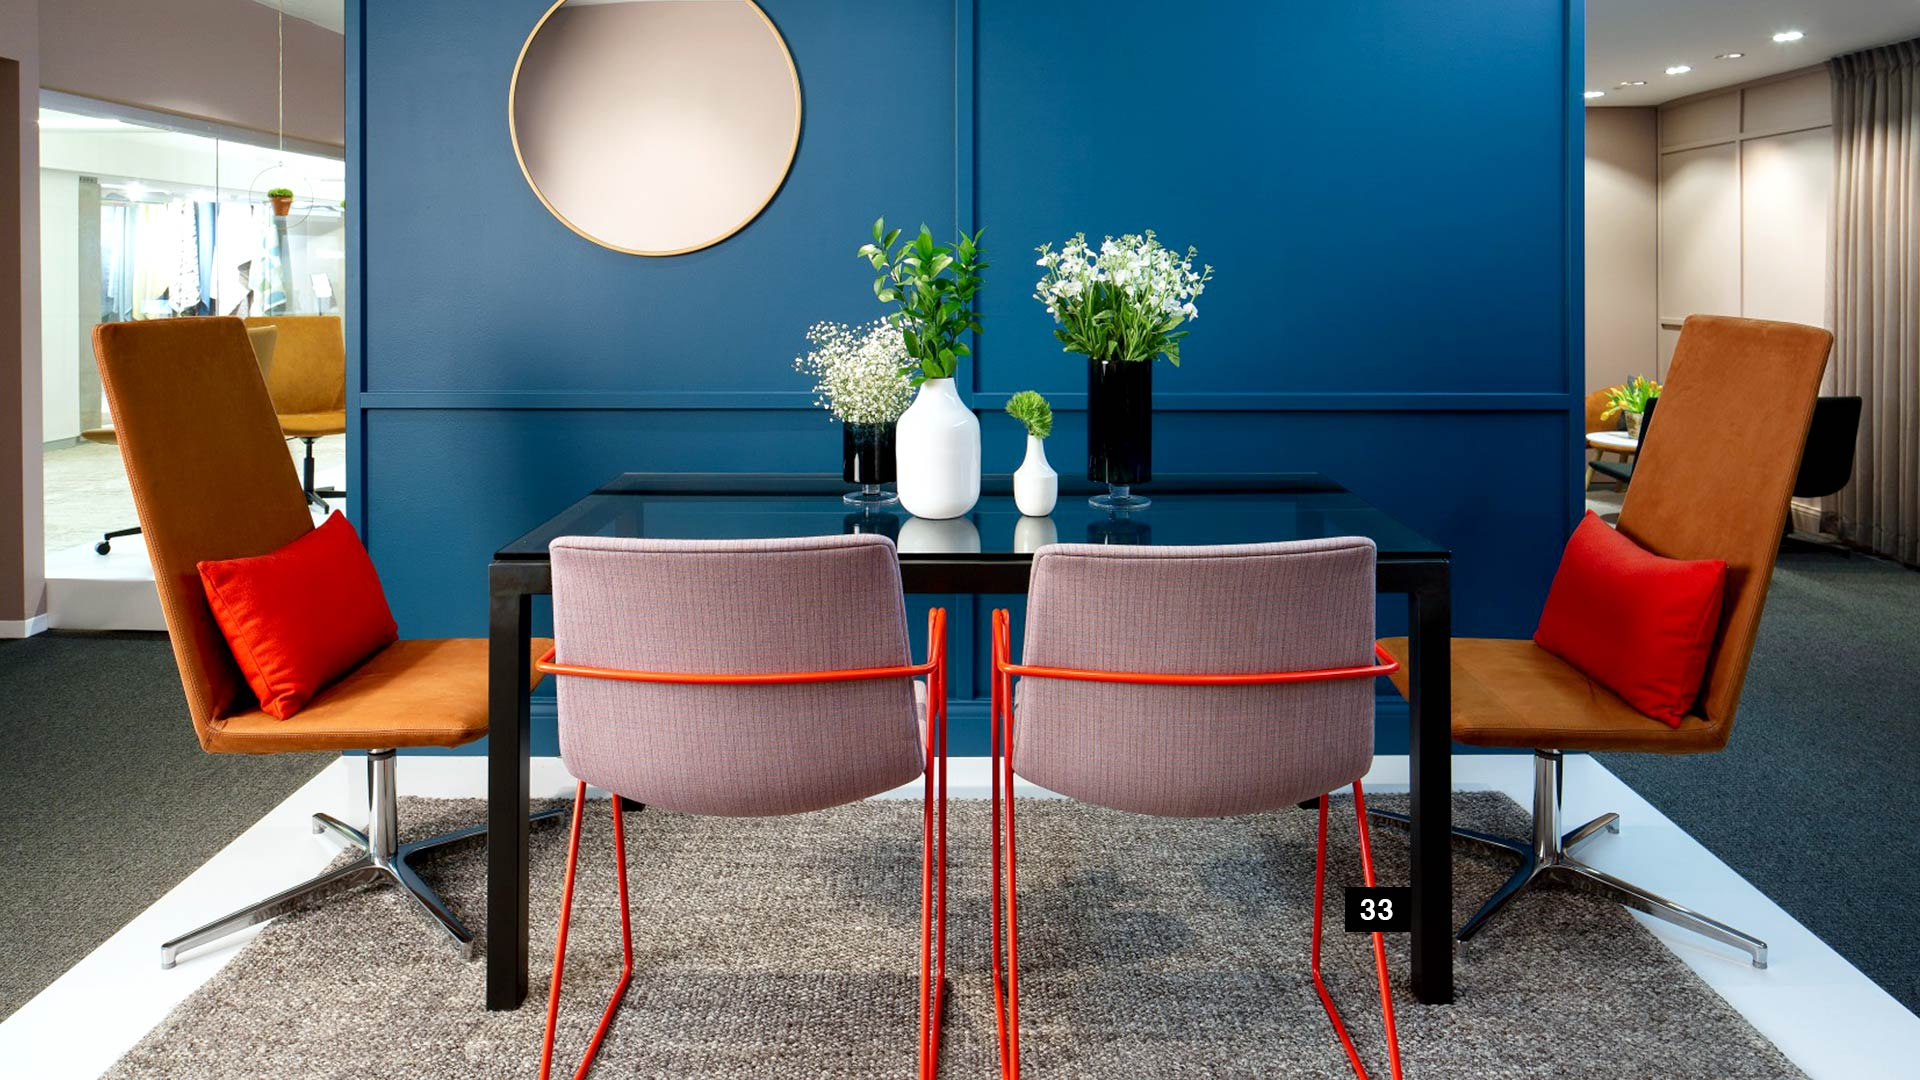 abstract-modern-furniture-source-defign-and-fjord